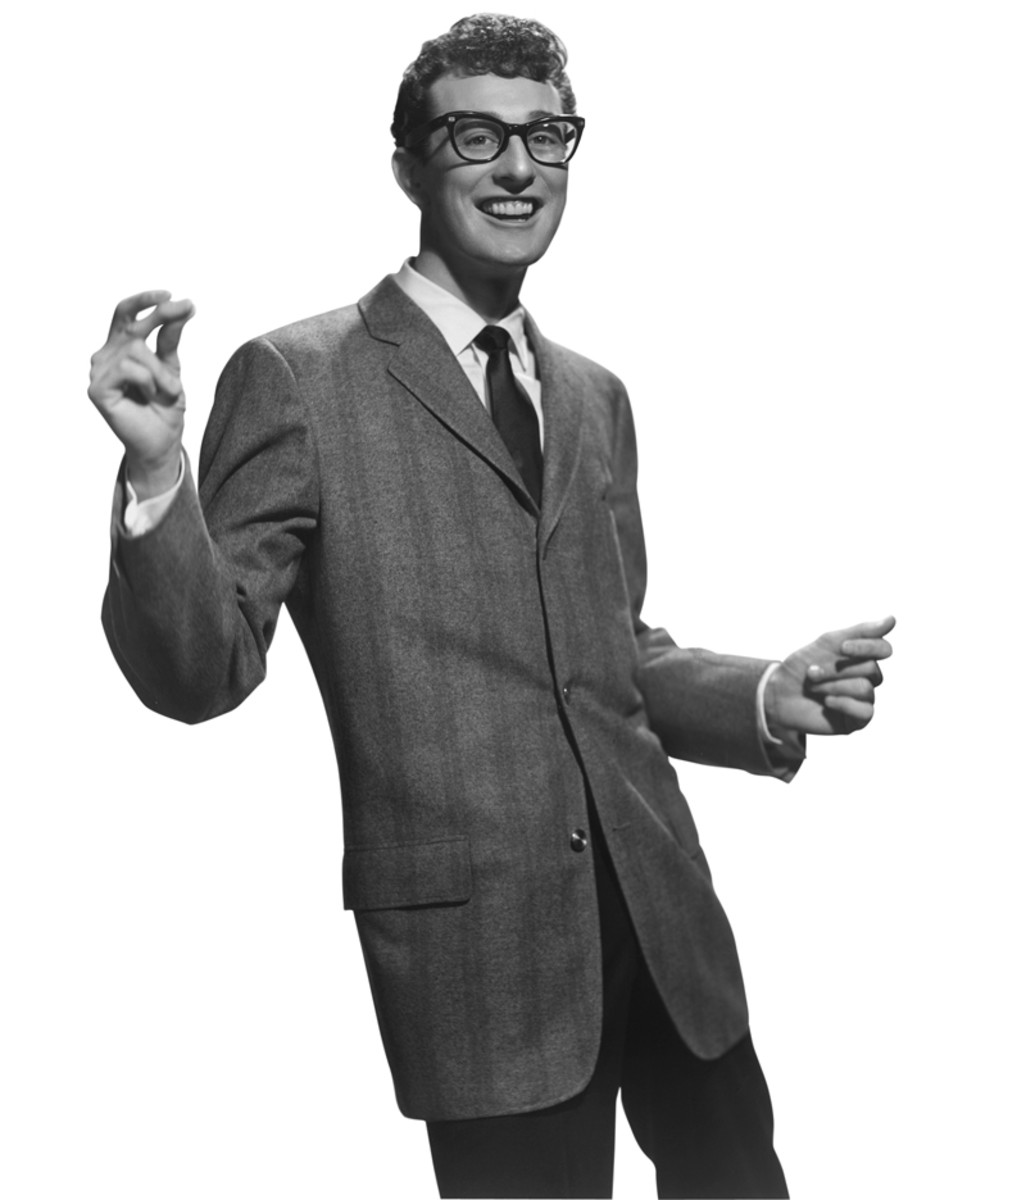 Rock'n'roll star Buddy Holly (1936 - 1959) snapping his fingers, circa 1955 (Photo by Hulton Archive/Getty Images).